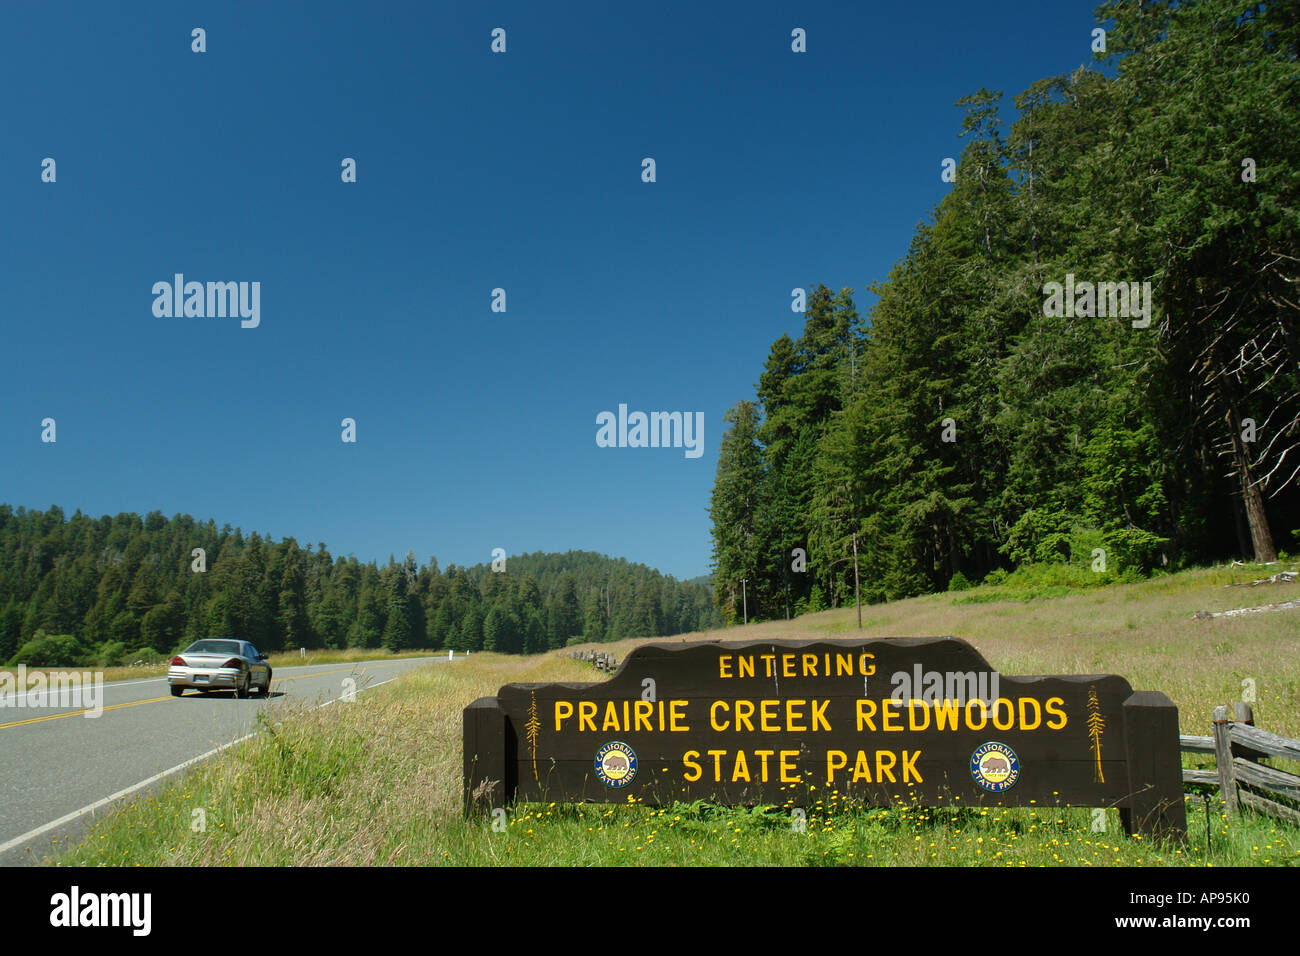 AJD51314, Prairie Creek Redwoods State Park, CA, California, Redwood National and State Parks, entrance sign - Stock Image